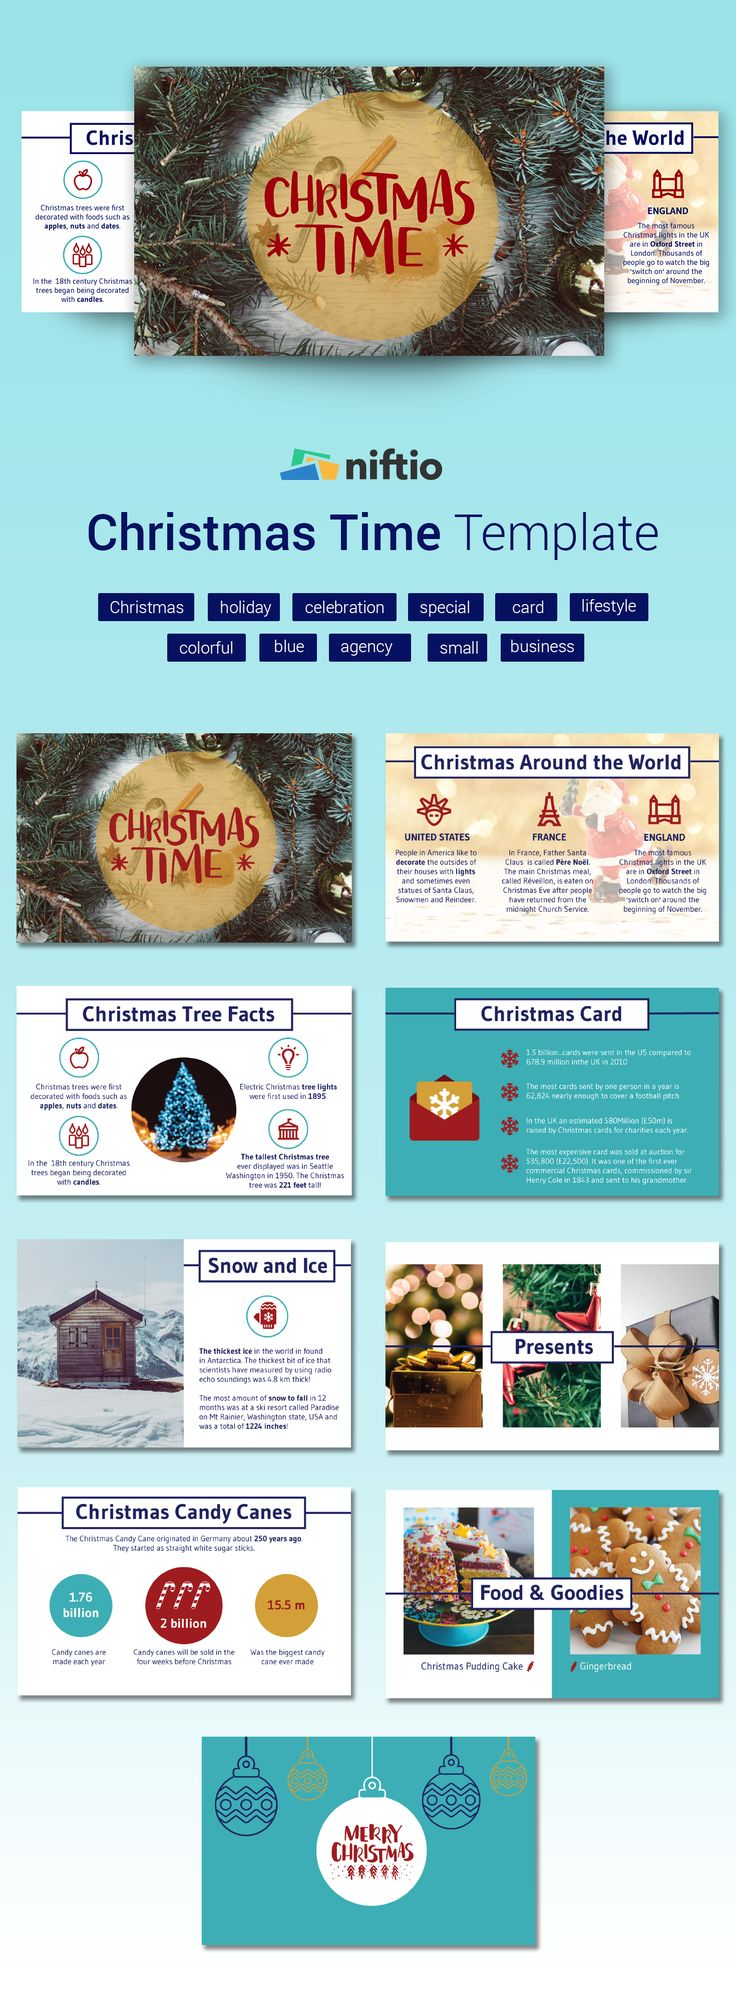 It's the most wonderful time of the year! We got into the #holidayspirit, so this template Thursday we're introducing another Christmas themed template.